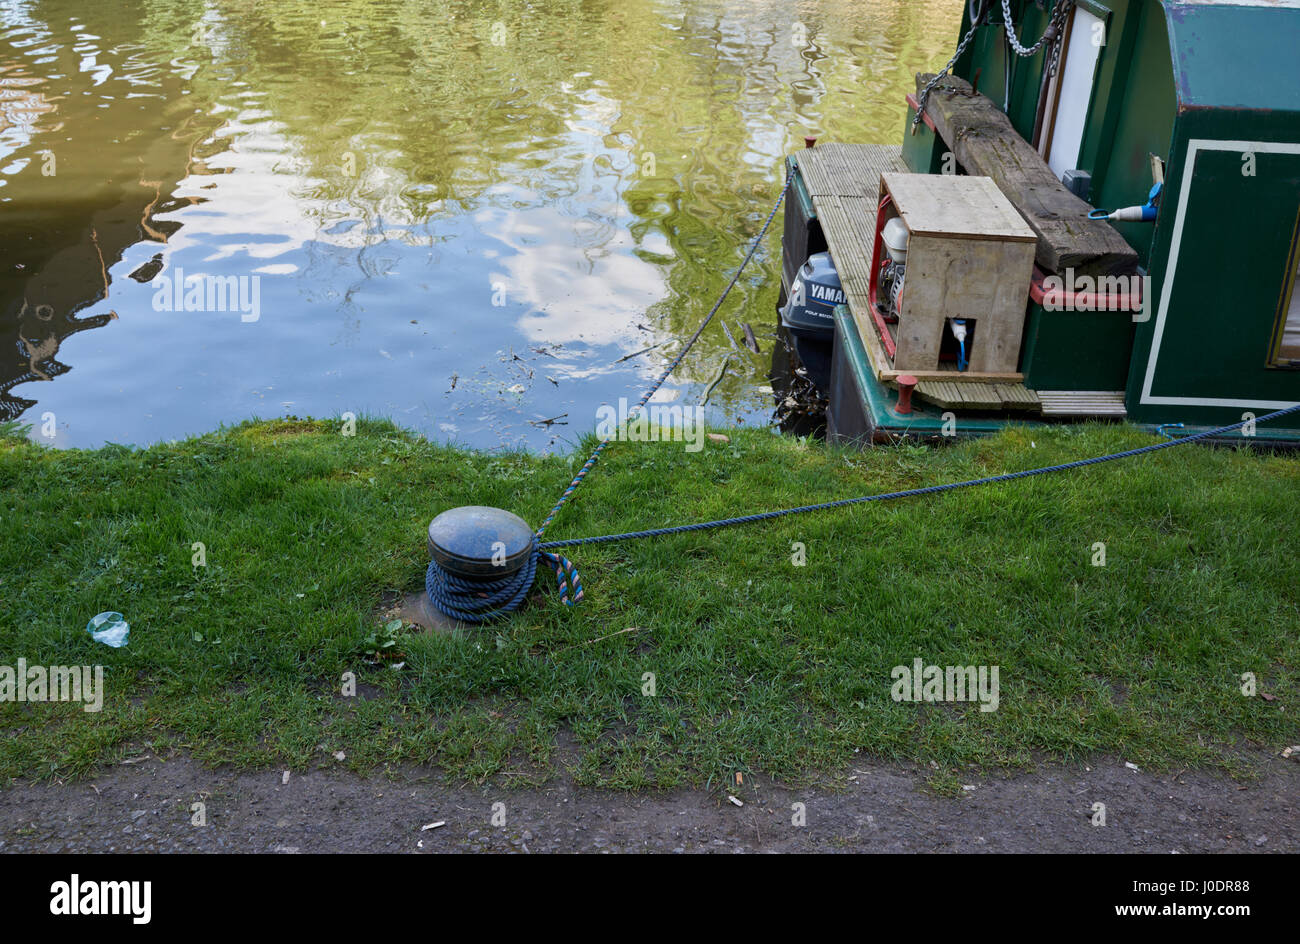 A moored canal boat in Brentford UK - Stock Image